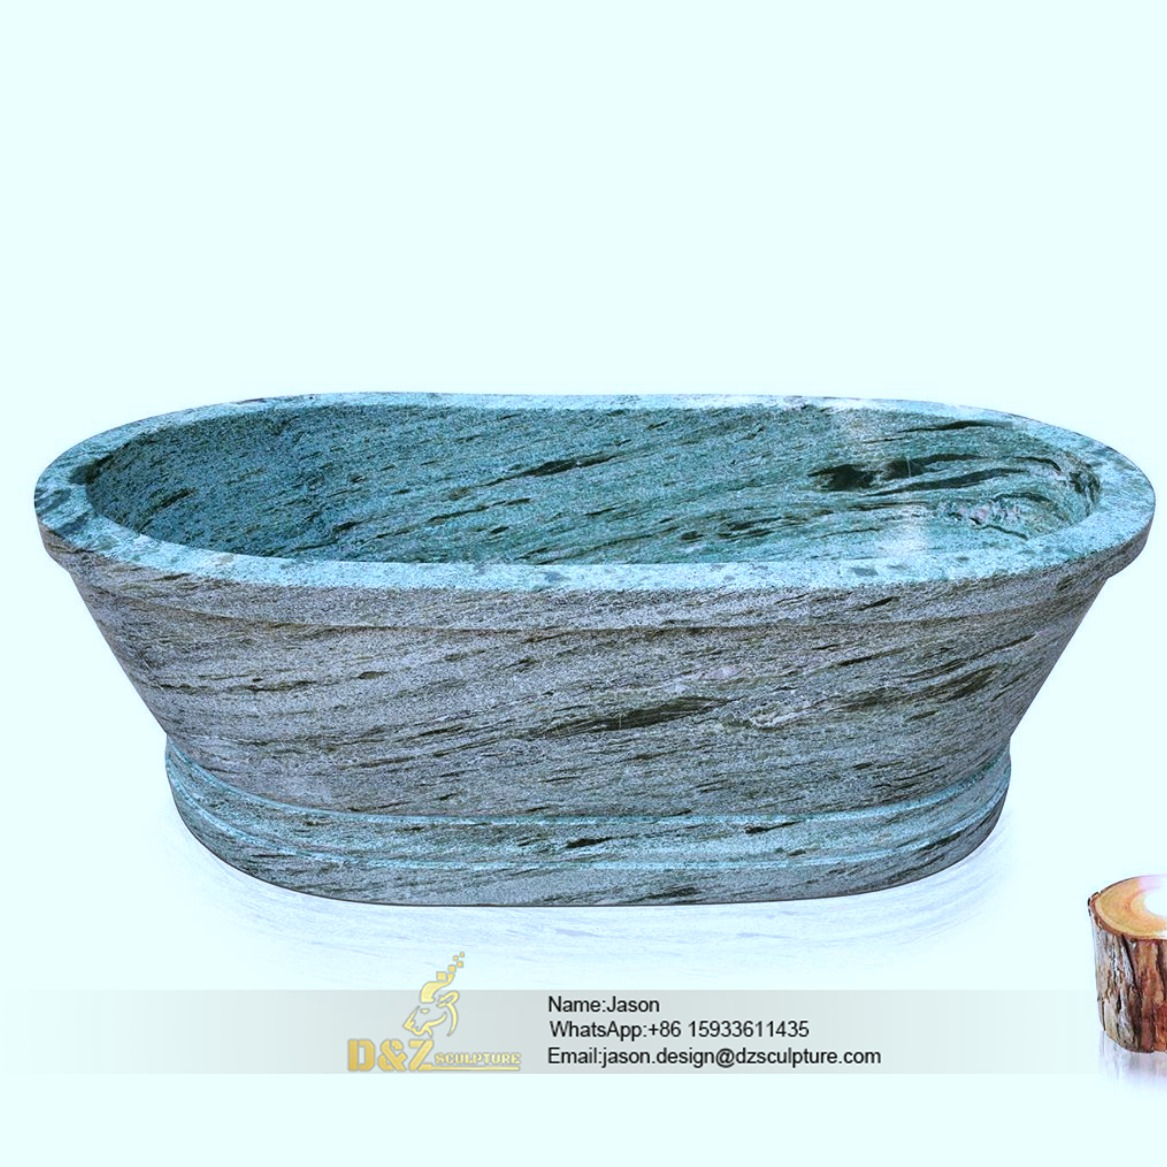 Jade stone bathtub